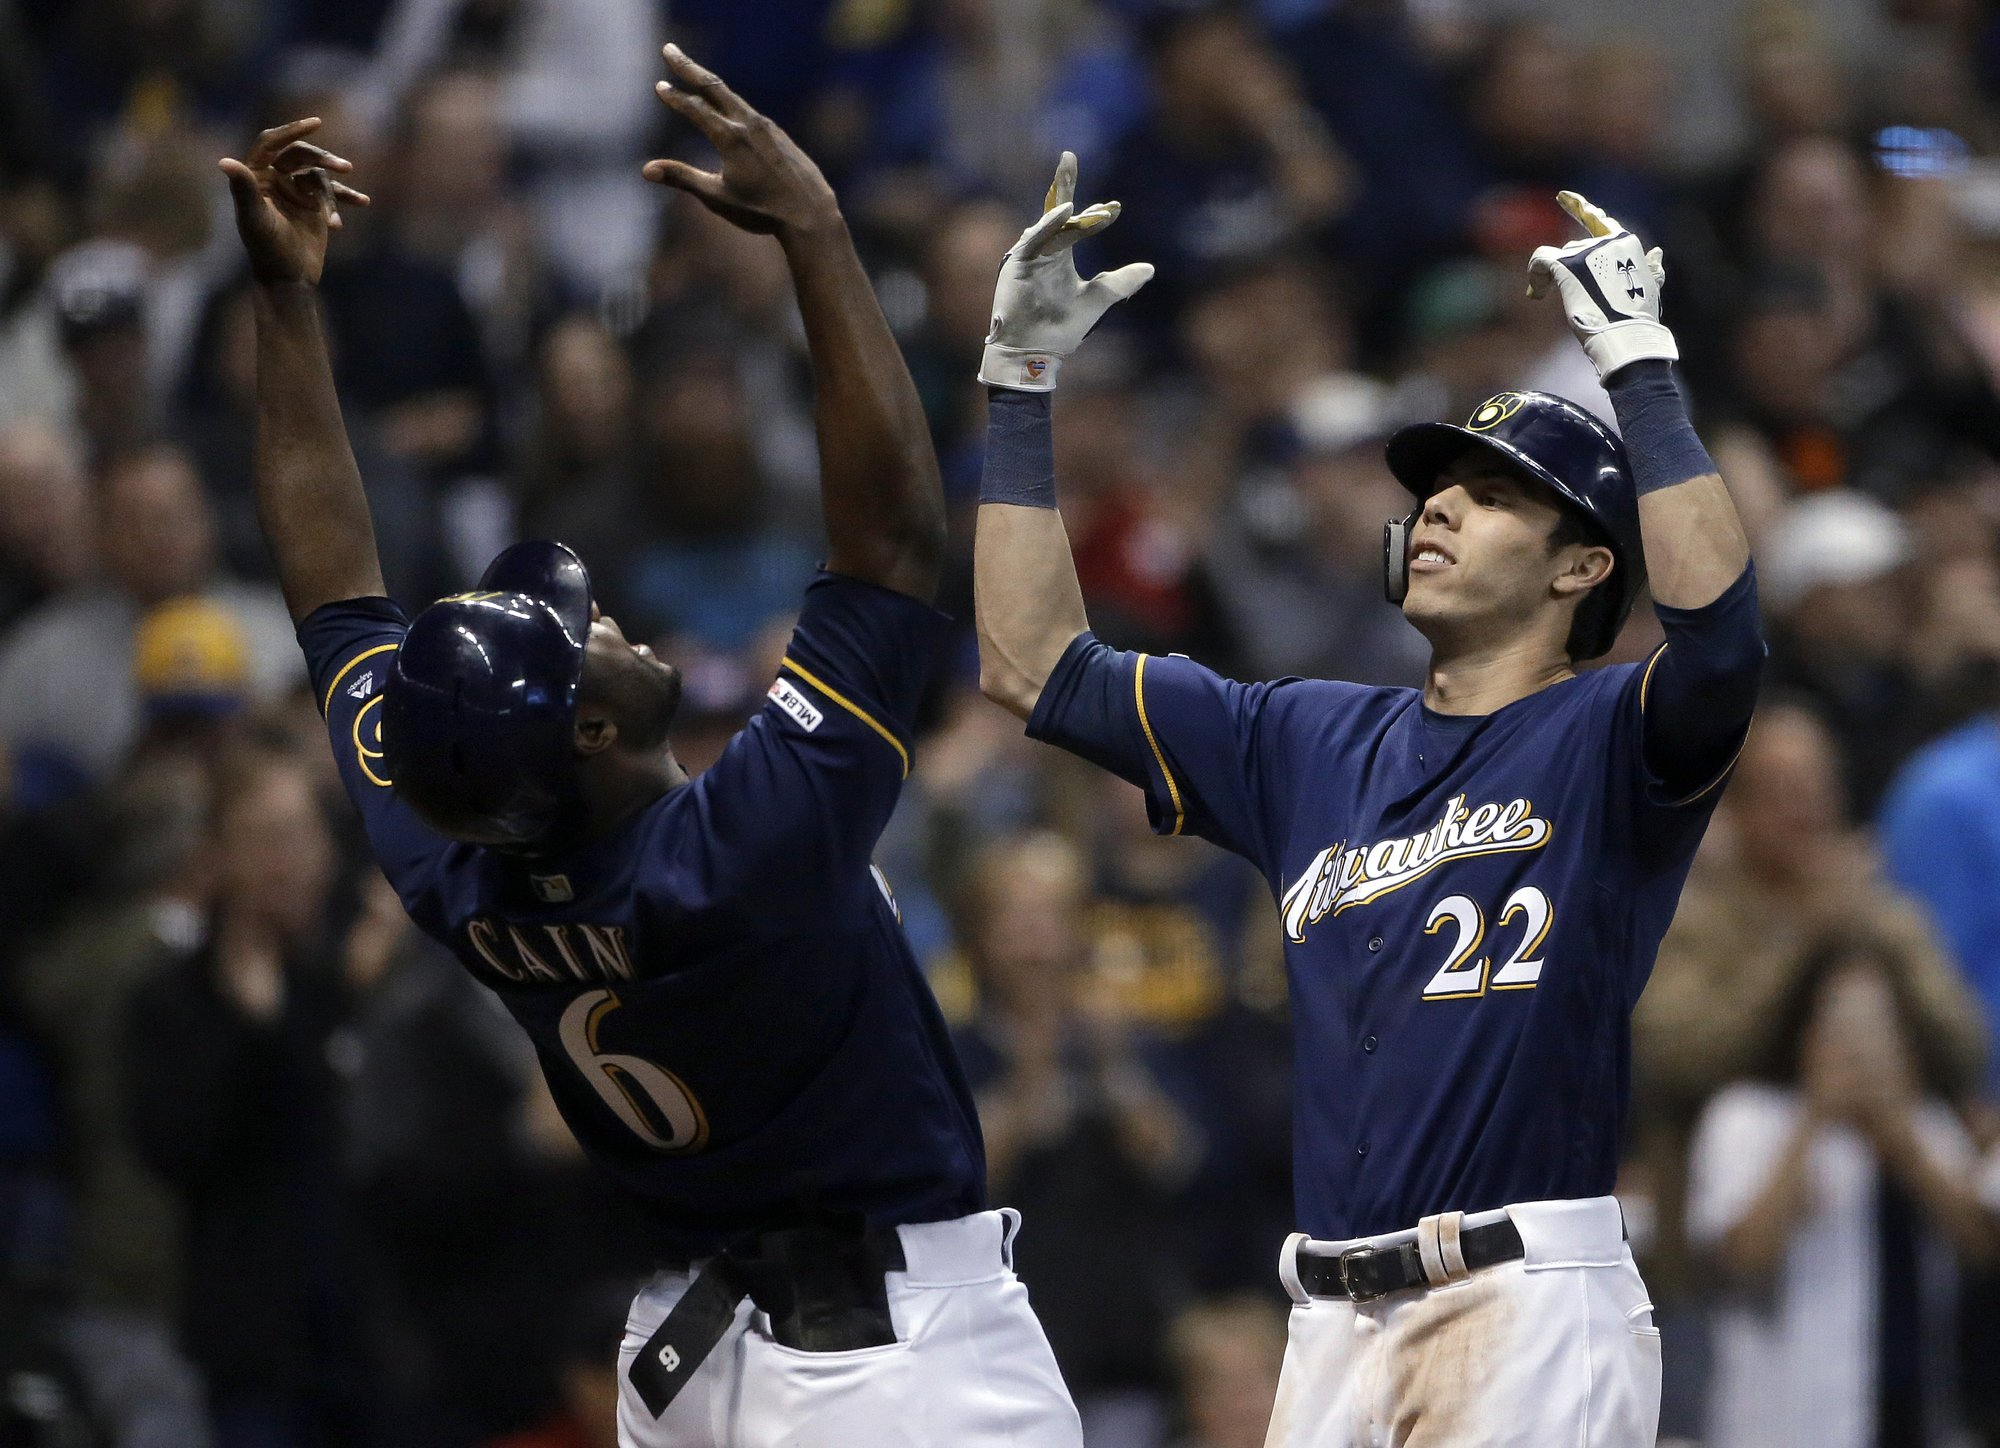 OH YELI: Reigning NL MVP hits another 3-run bomb, as Brewers roll past Cards